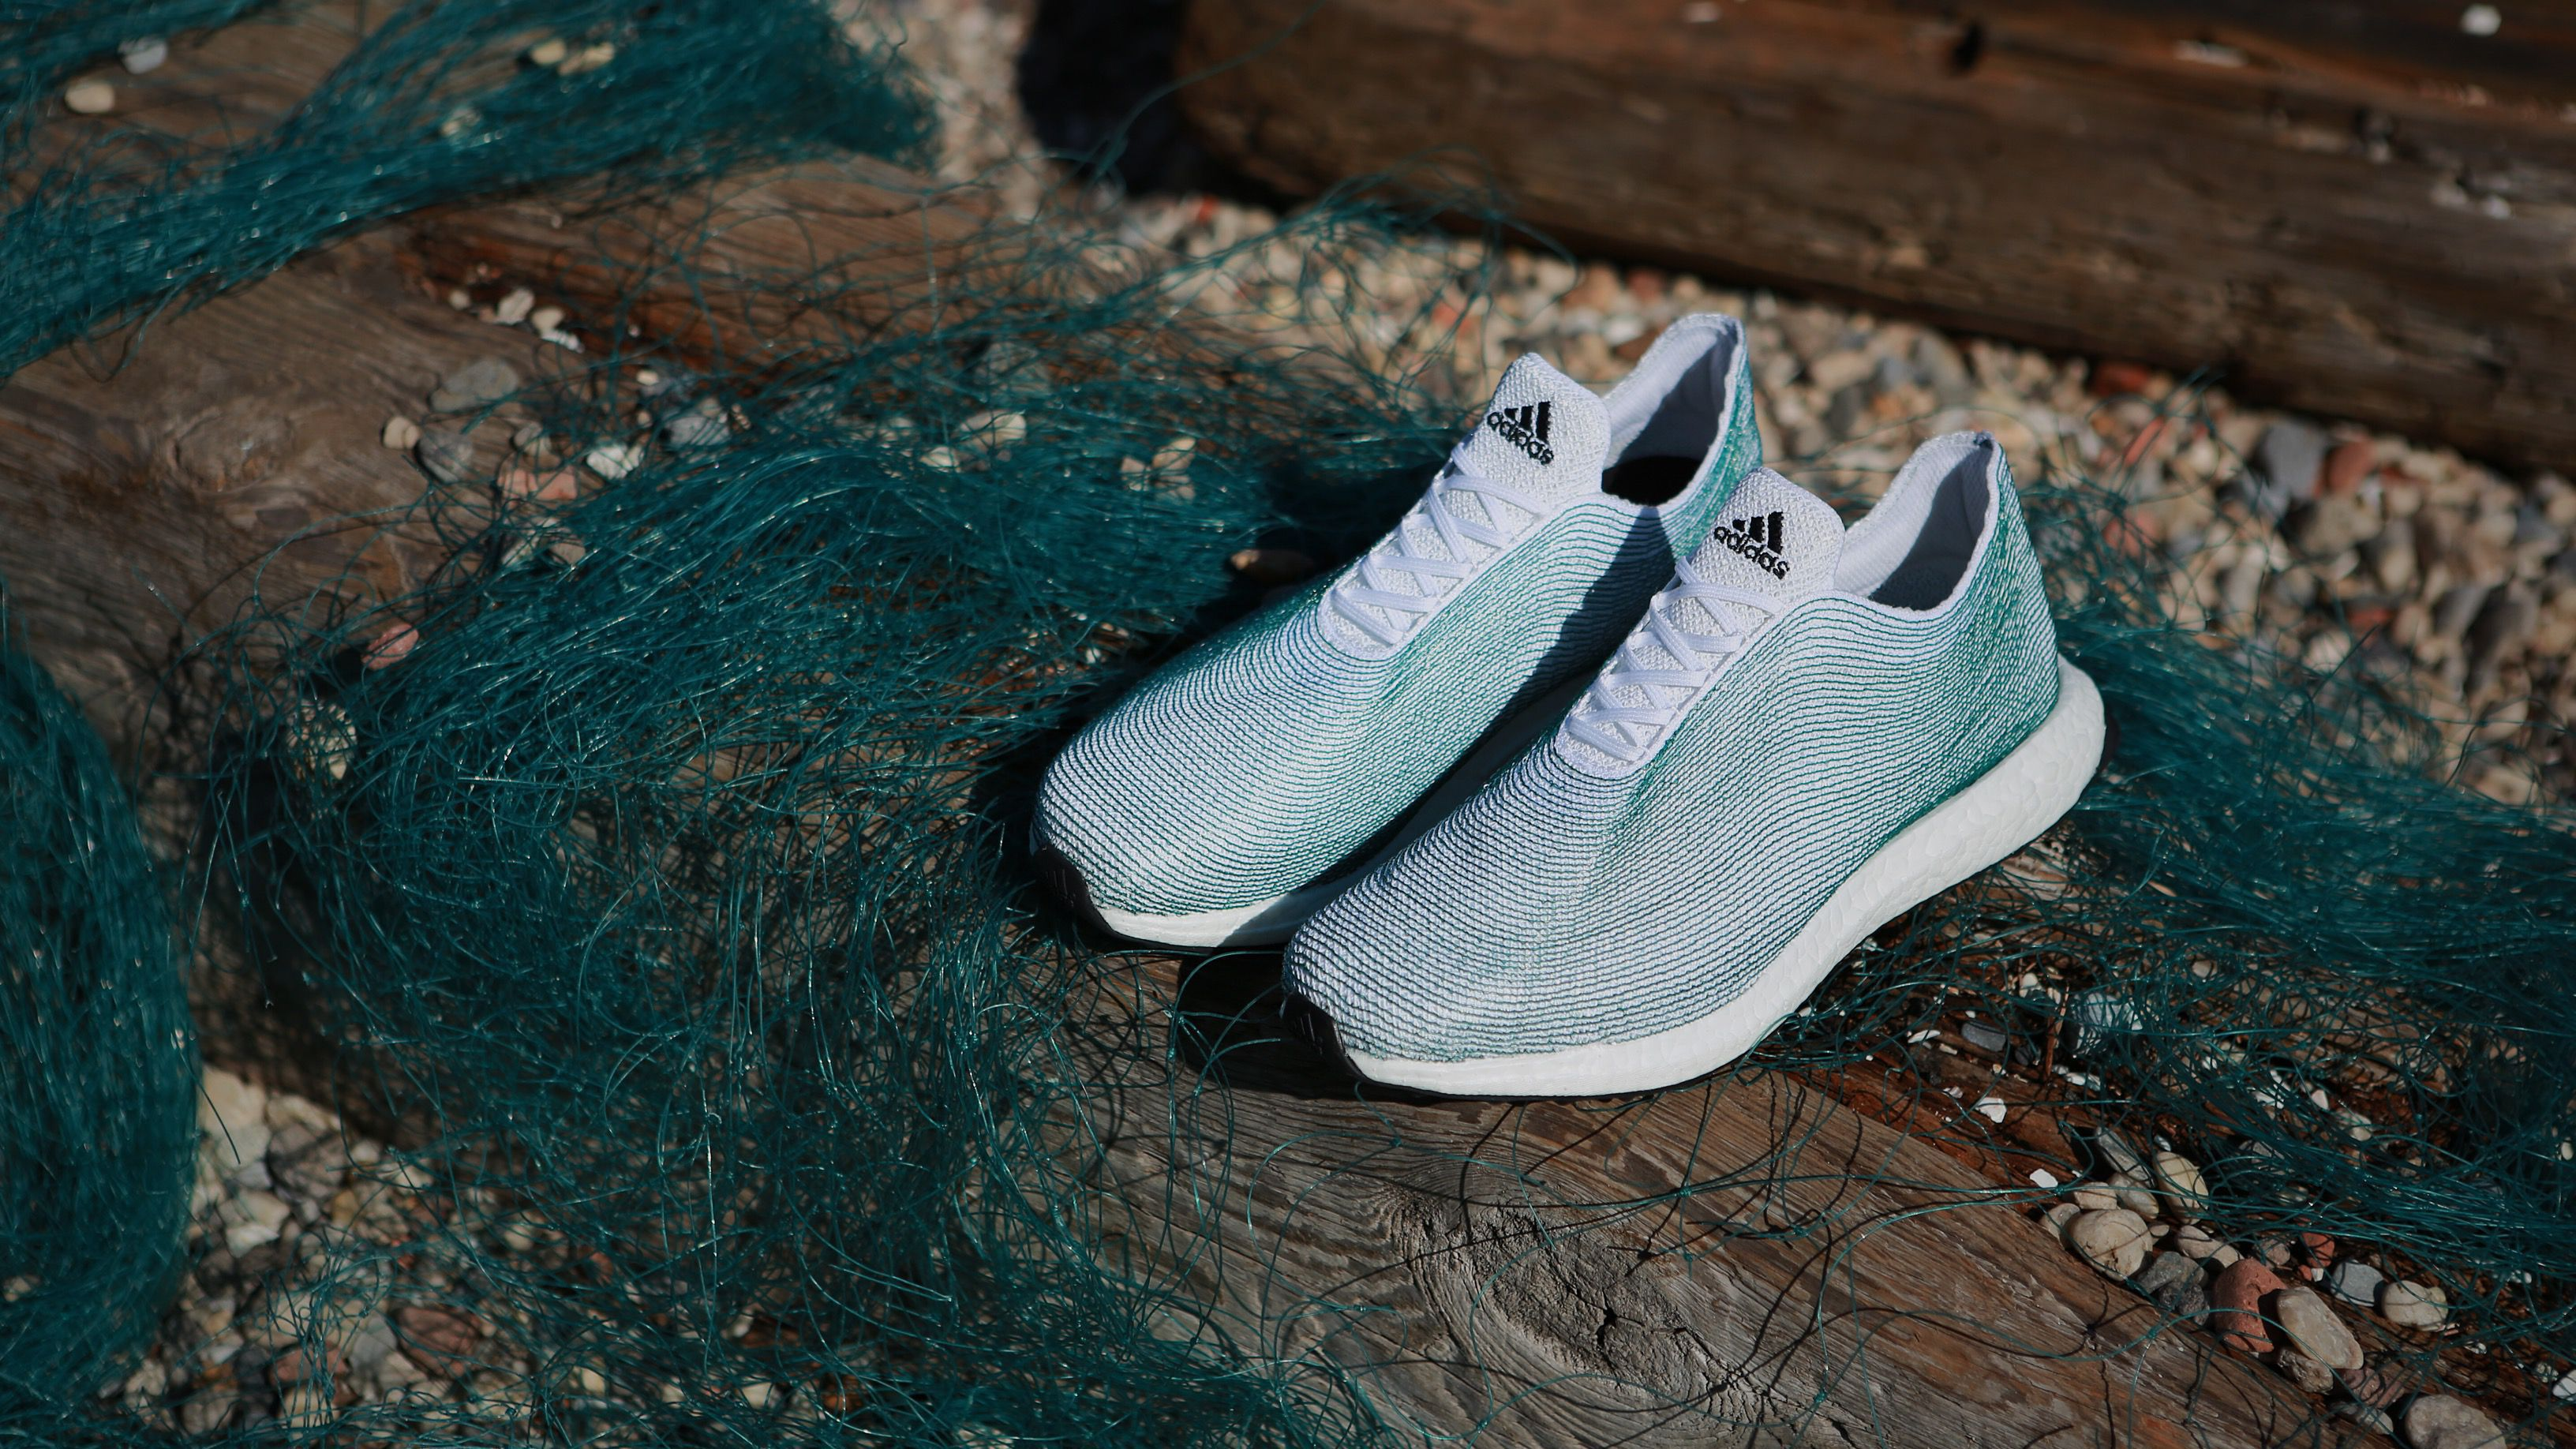 Adidas x Parley for the Oceans sneakers